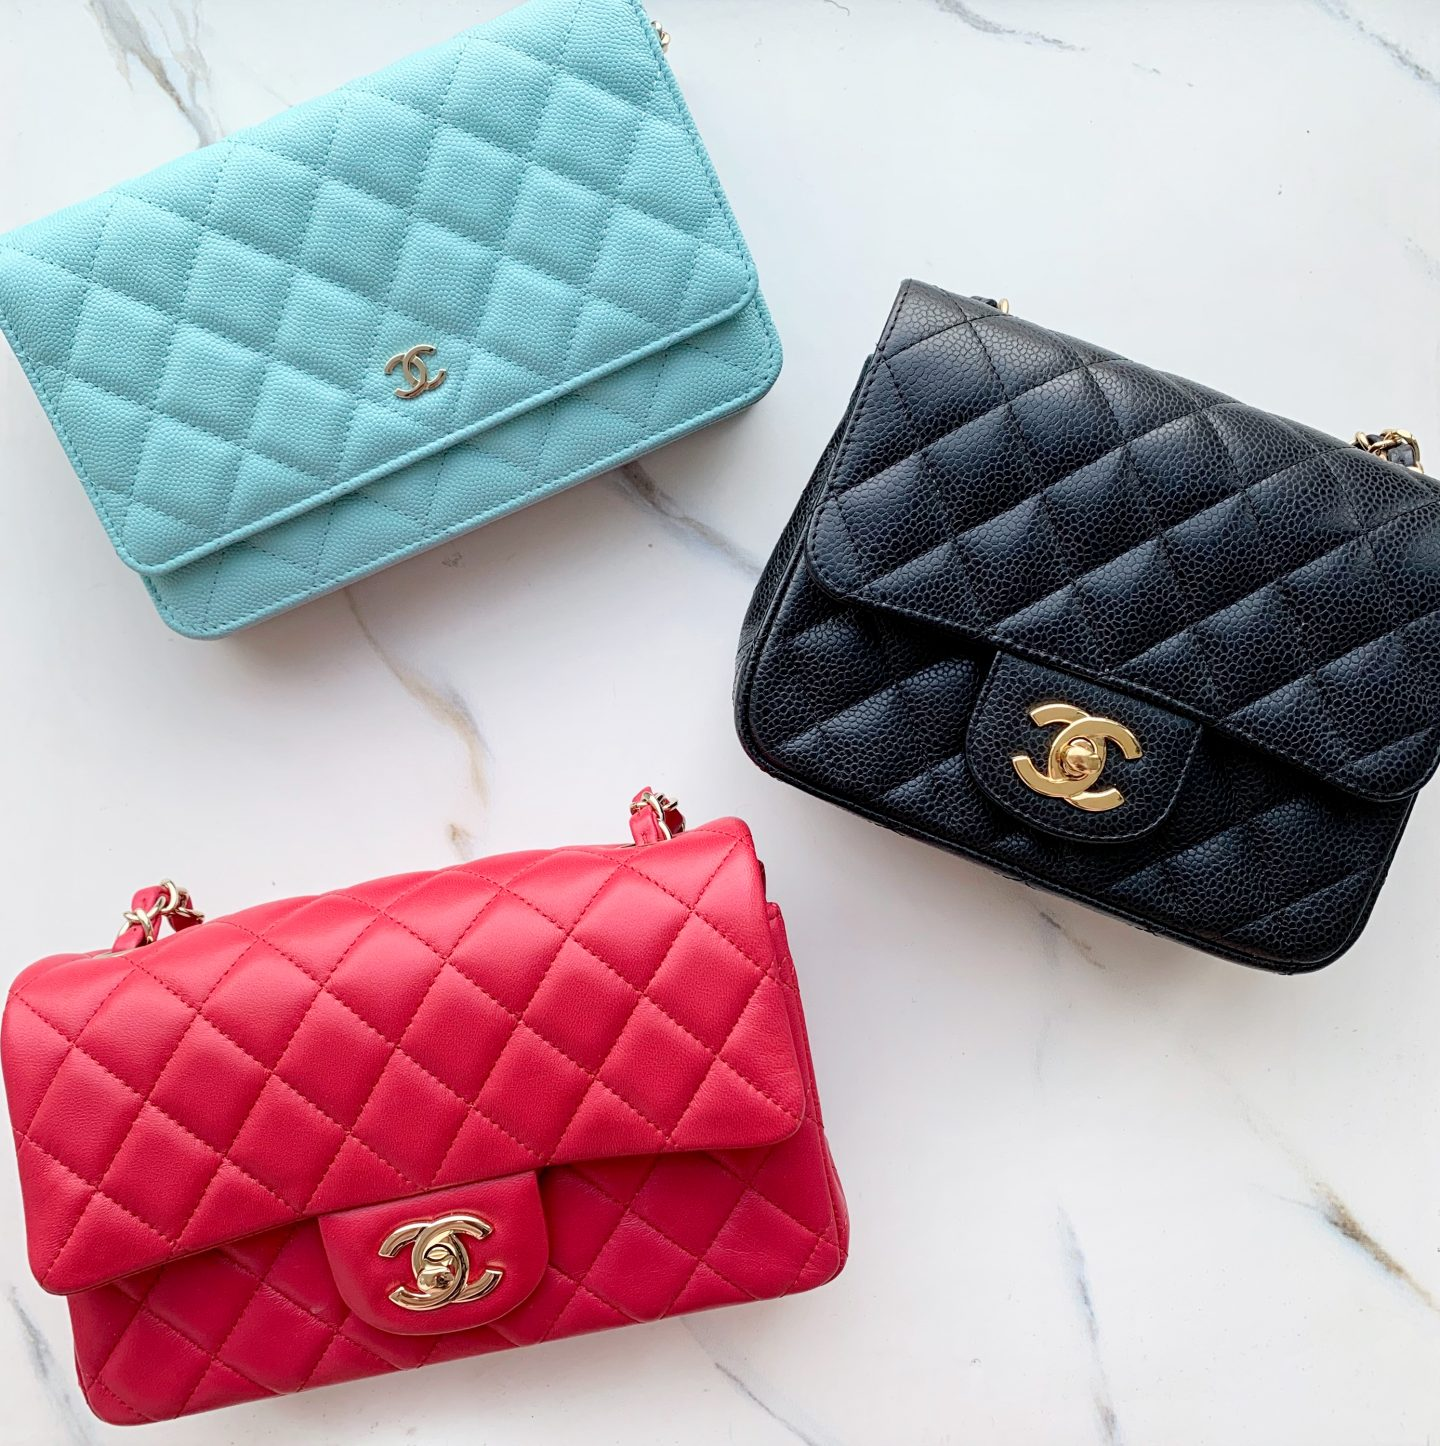 b778e776d590 ... over here on the blog for the first couple of weeks of 2019 but I  thought I would kick things off again with a post on what the best first Chanel  bag to ...